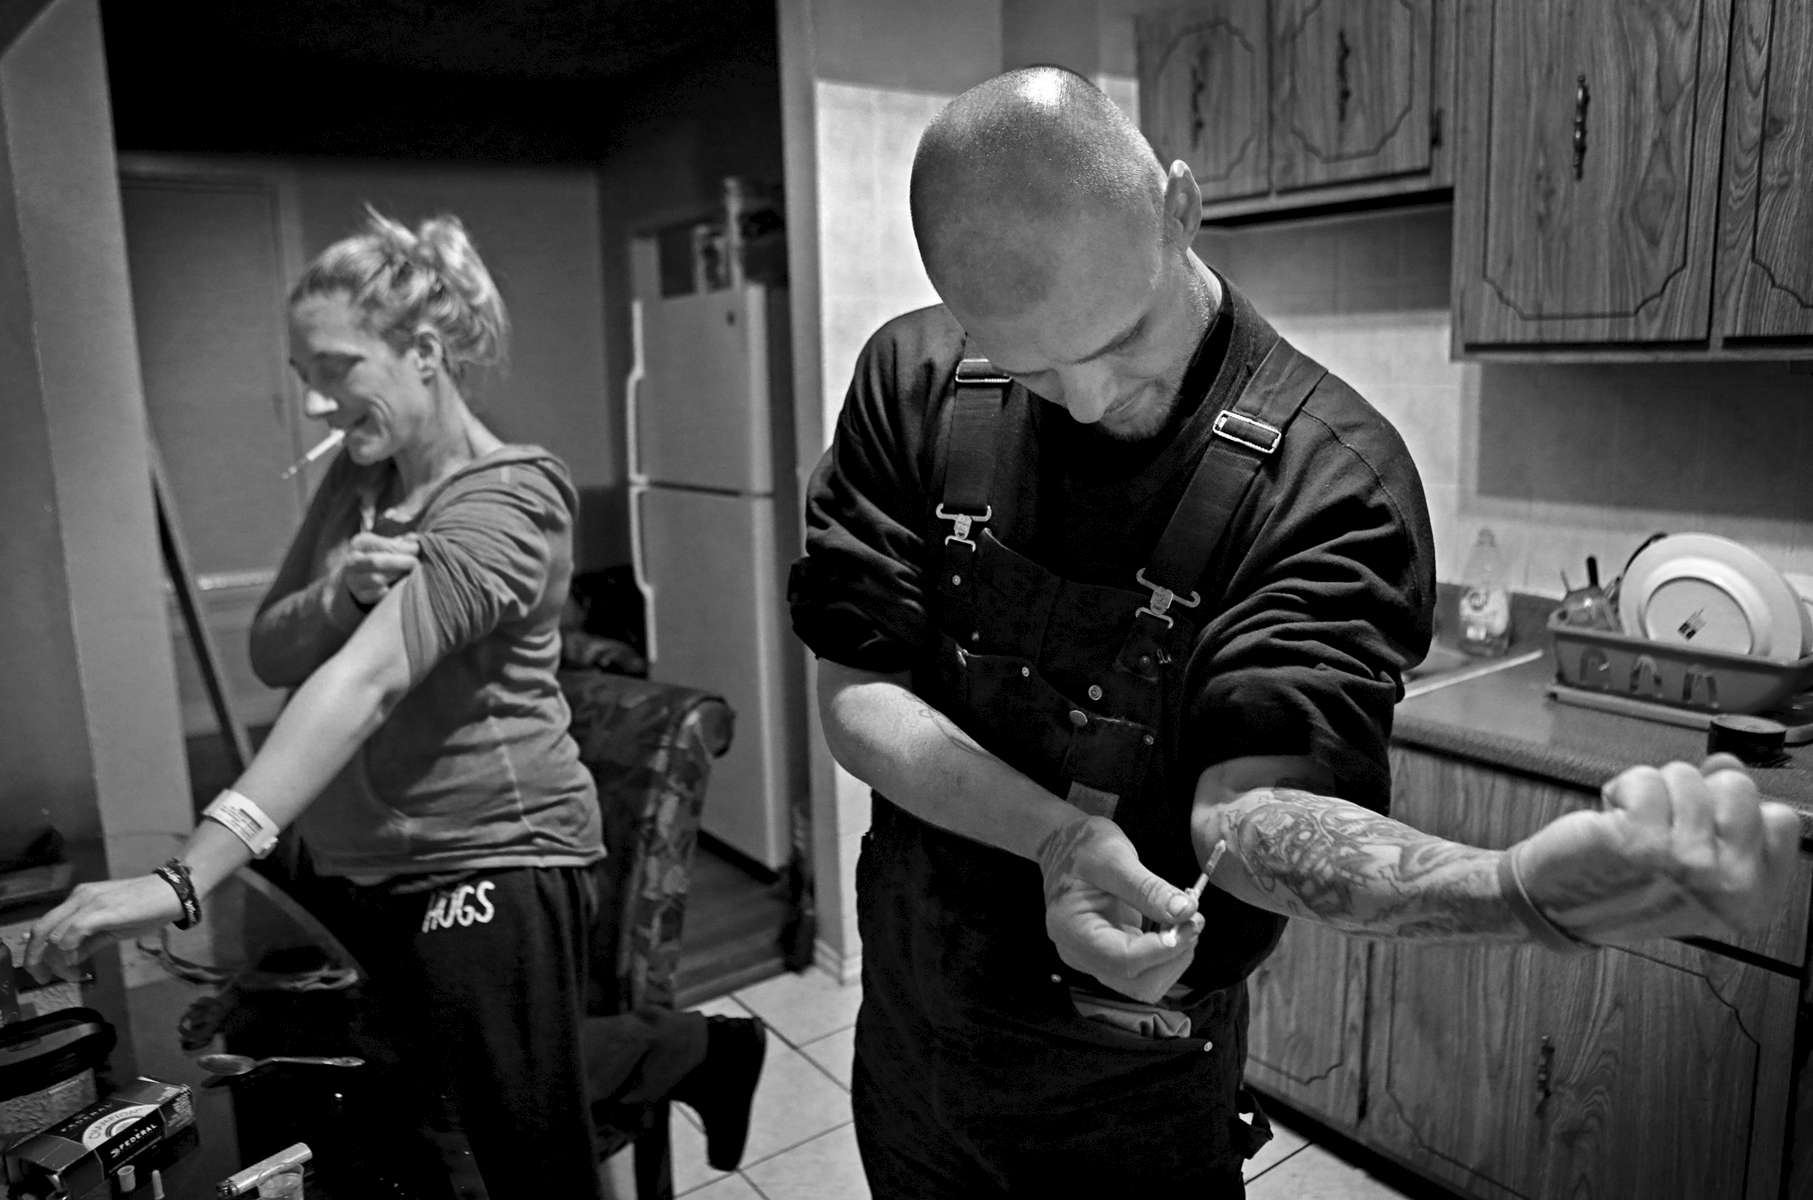 Ashley Johnston and Richard Skinner shoot heroin in the kitchen of Johnston's home in St. Louis on Monday, Feb. 6, 2017. Both have used heroin off and on for years. Johnston, who is six months pregnant with her fourth child, is trying to kick her habit with methadone, but recently missed a few methadone doses because of car problems. Skinner says he uses his stints in jail to get clean. Johnston and Skinner have one child together. Johnston and Skinner's child is cared for Johnston's mother who also cares for Johnston's other two children. In 2016 273 city residents last year, more than double the previous year, died of fatal opioid overdoses. Heroin is being cut with fentanyl to increase the high but the fentanyl is so powerful it leading to a sharp increase in deaths from overdoses.